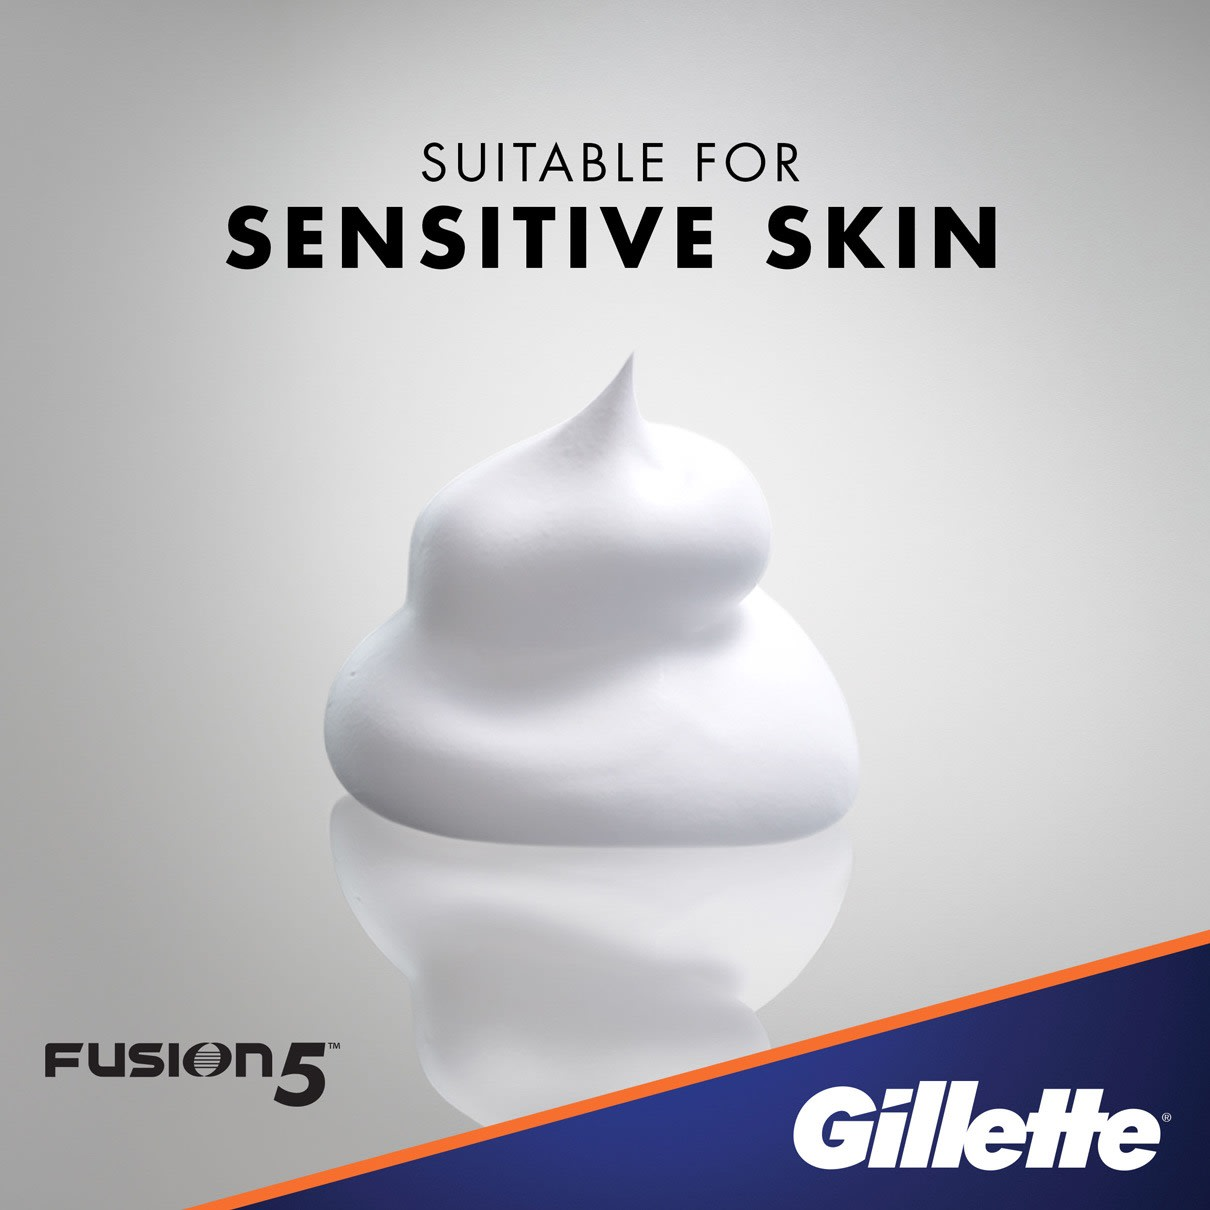 Suitable for Sensitive Skin I  Gillette Fusion5 Ultra Sensitive Shave Foam